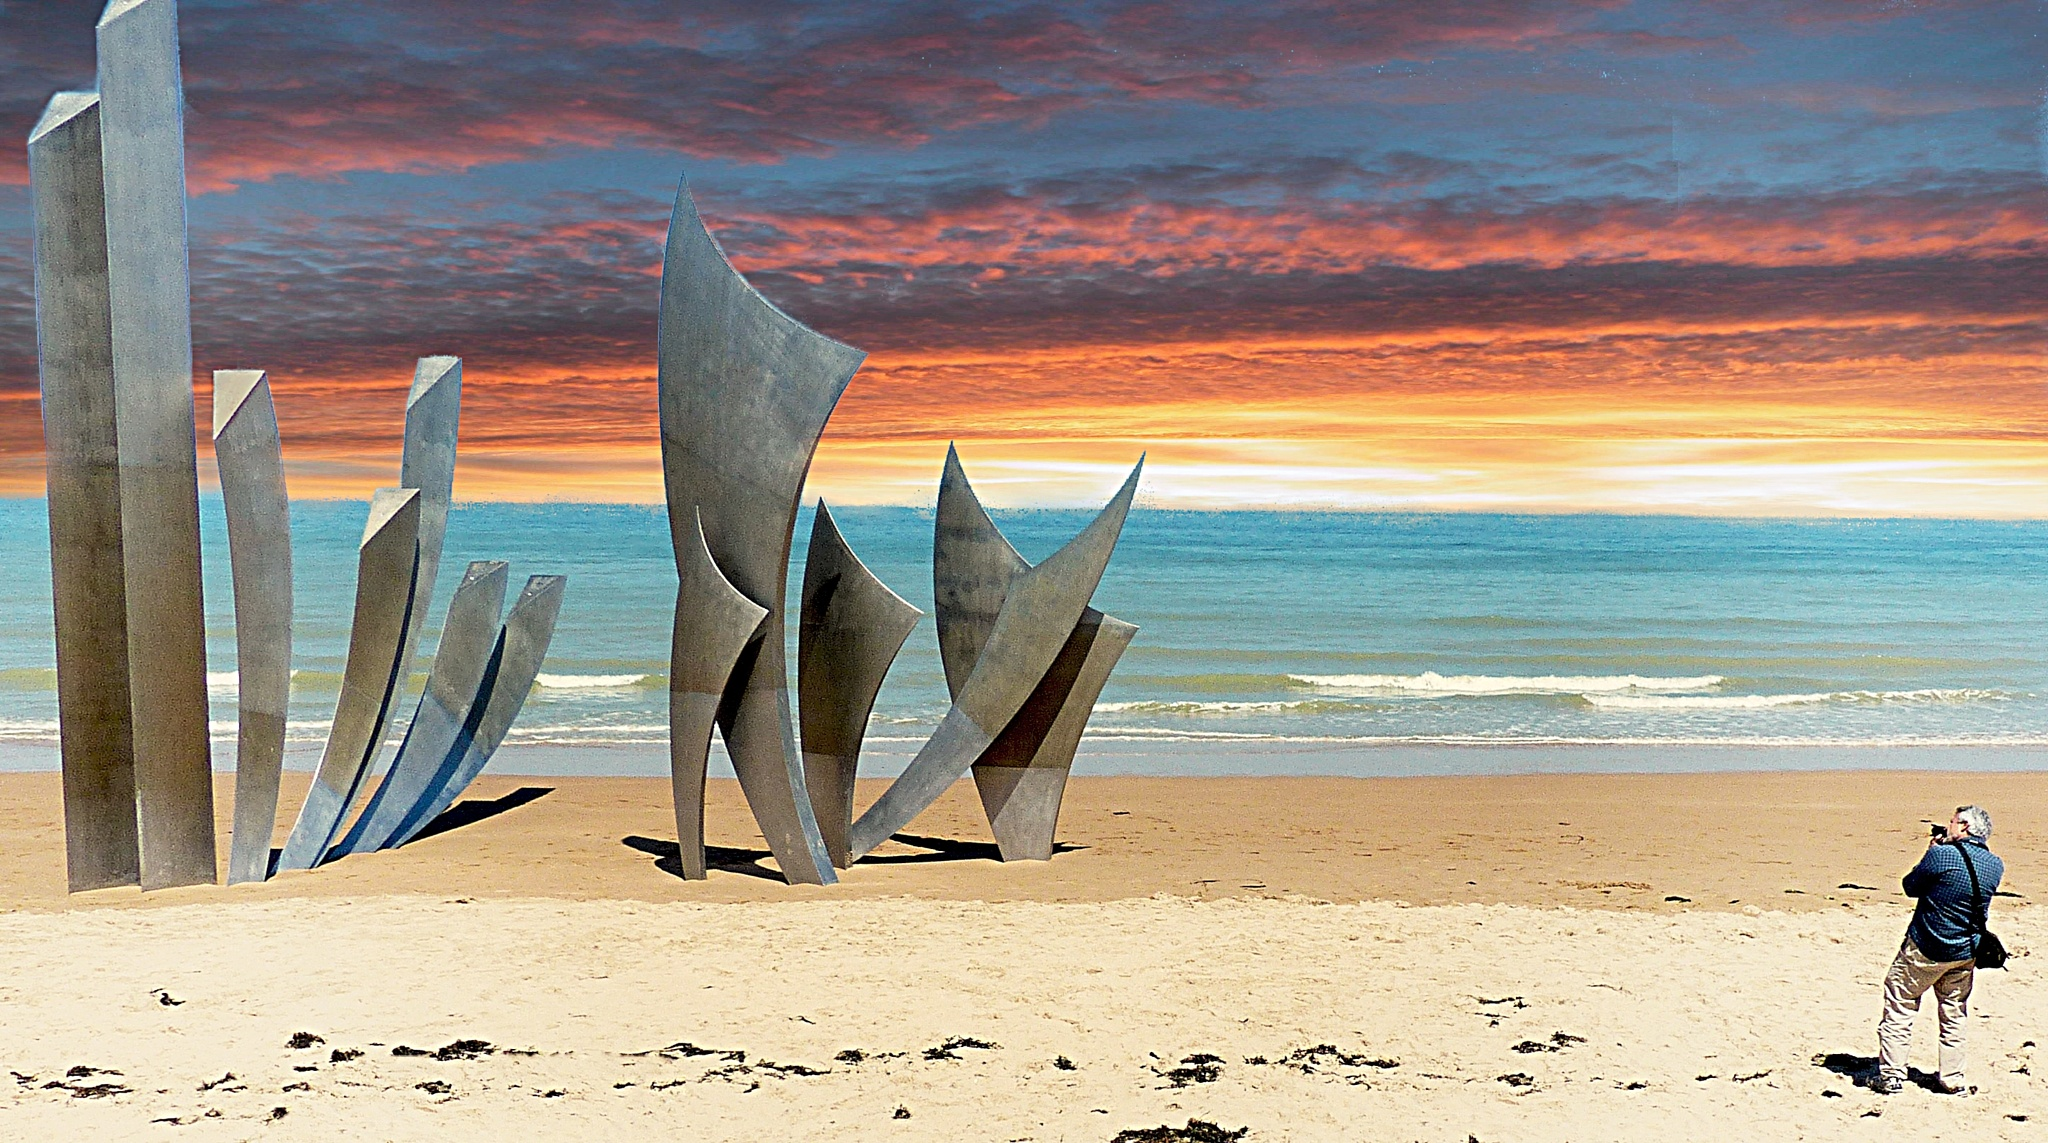 D-Day memorial by Costa Philippou